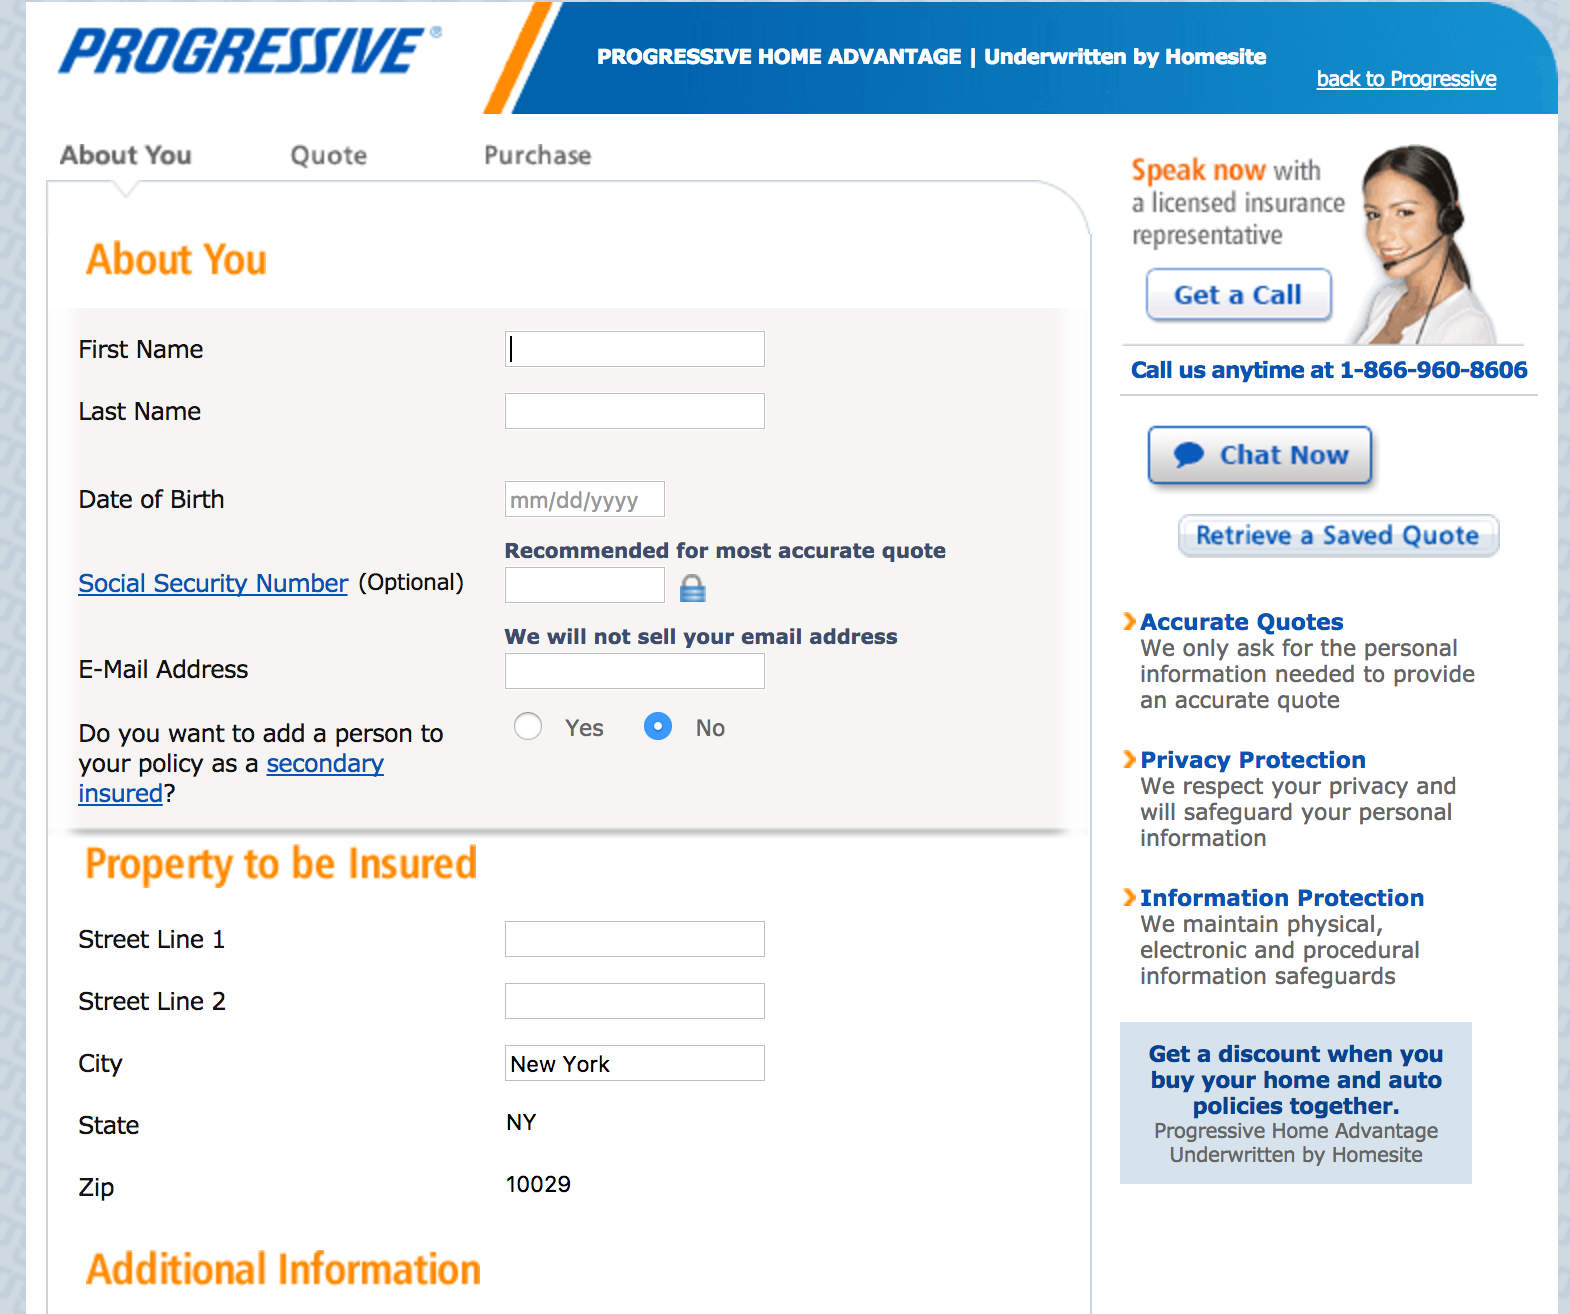 Progressive Car Insurance Quote Video Coverager Calls Out Progressive's Homequote Explorer Before